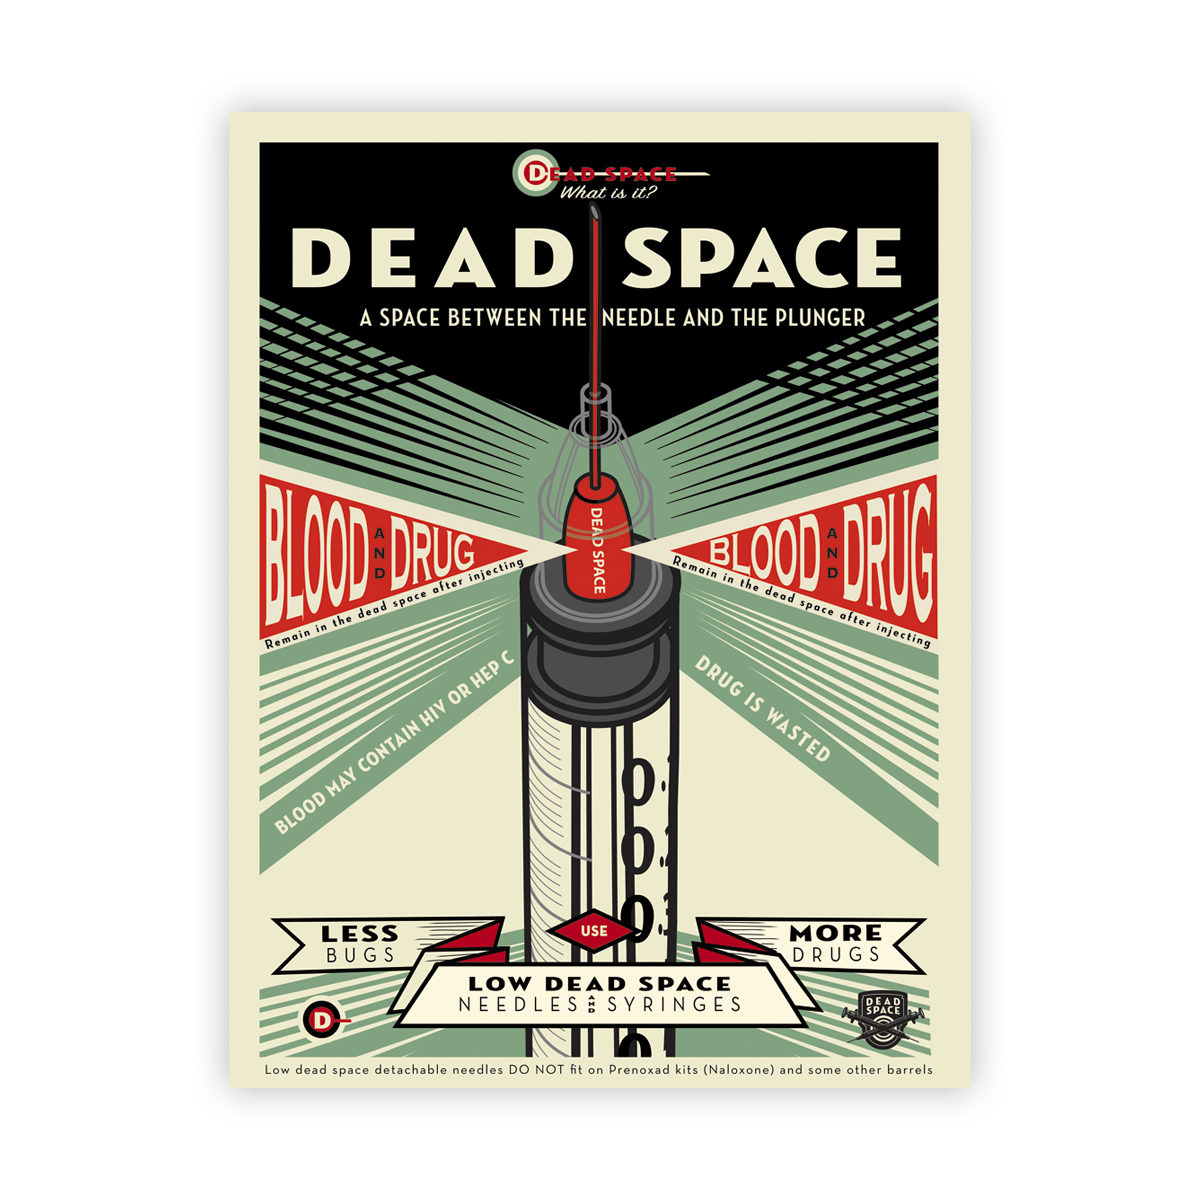 Dead space - what is it? poster